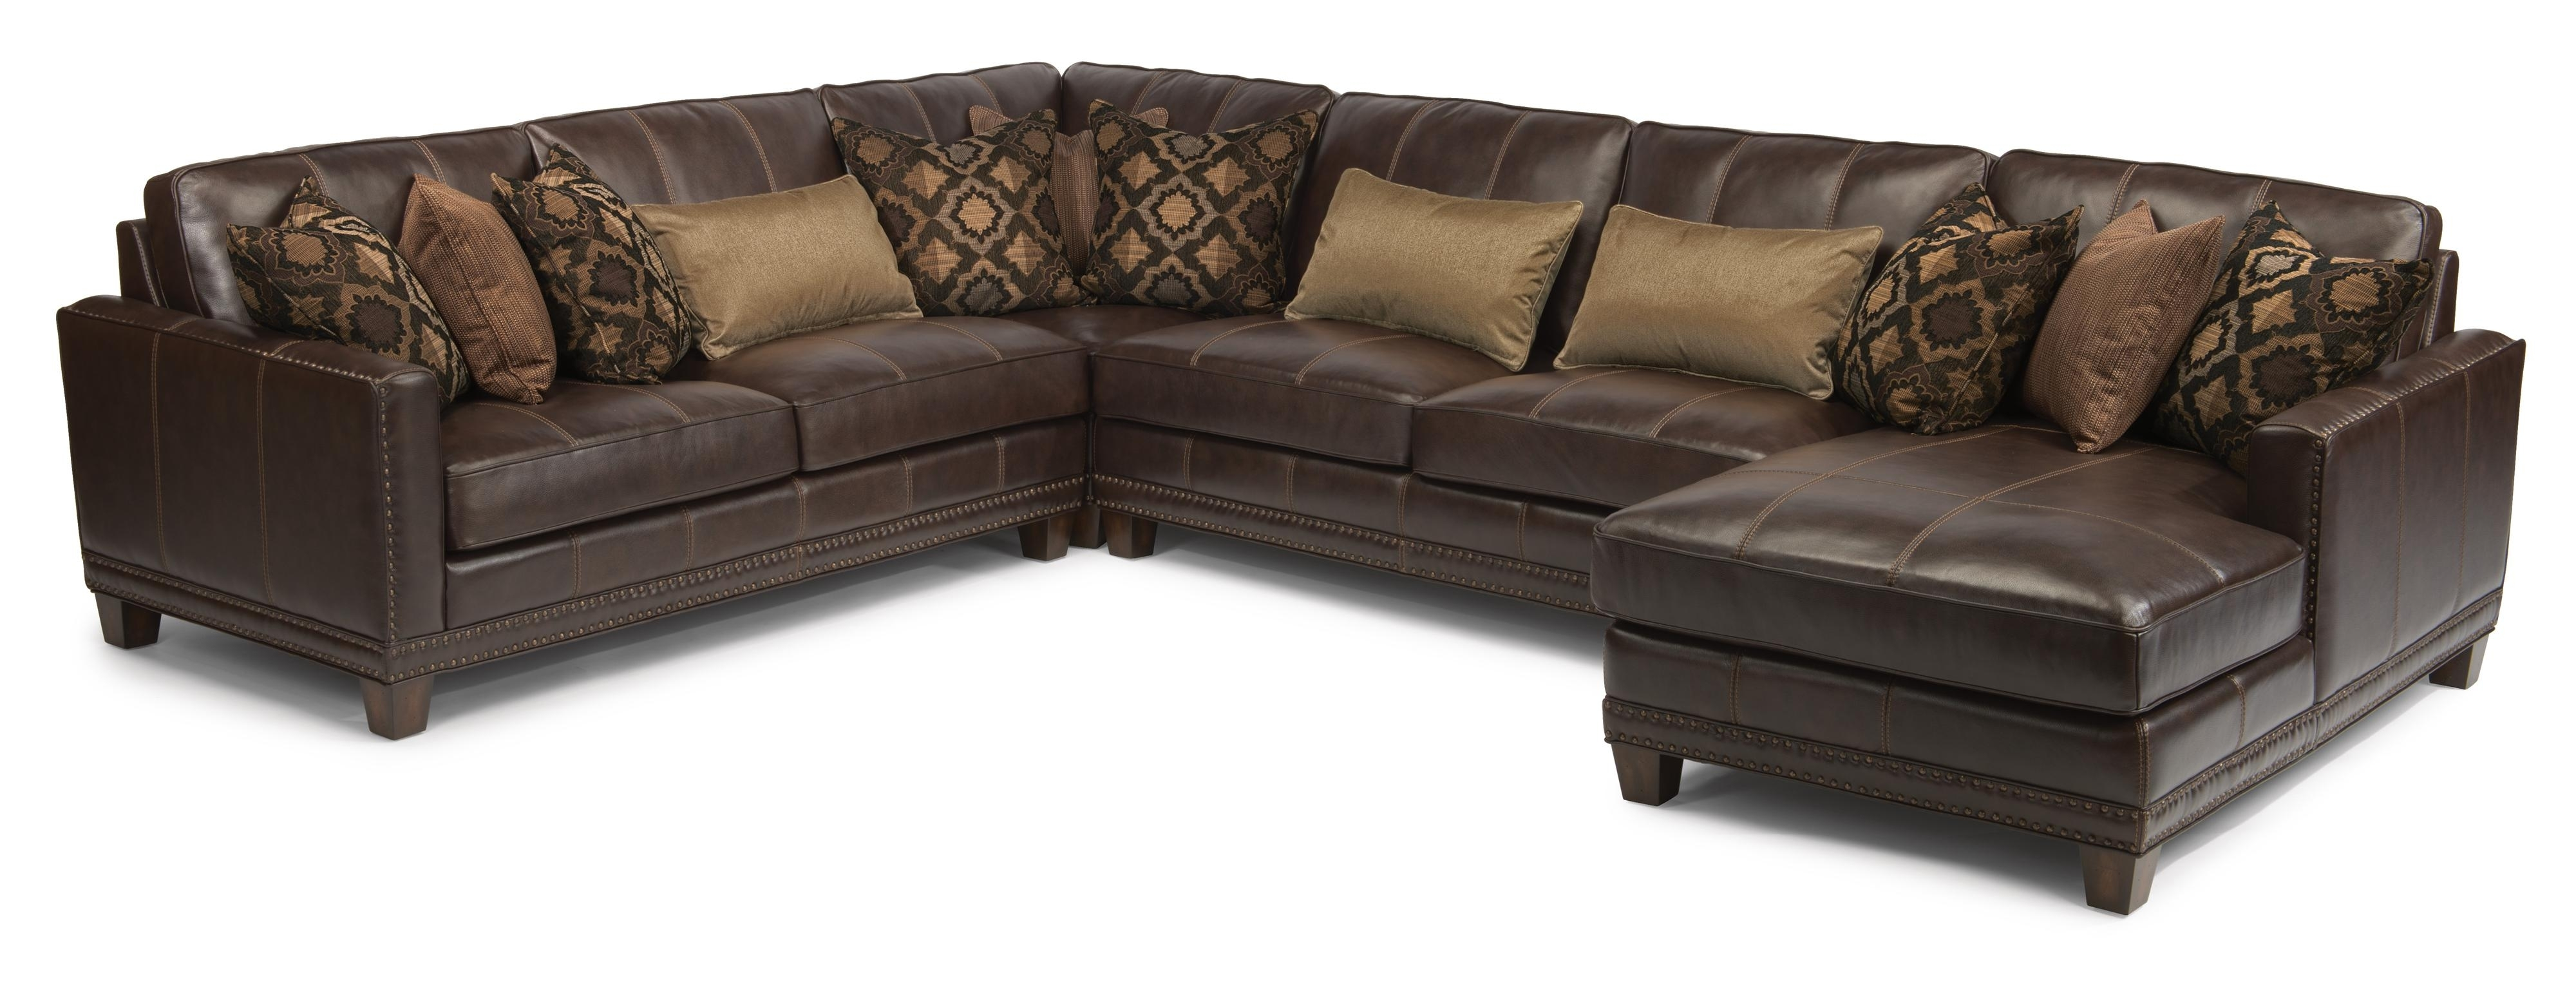 Flexsteel Latitudes - Port Royal Transitional Four Piece Sectional within Blaine 4 Piece Sectionals (Image 11 of 30)